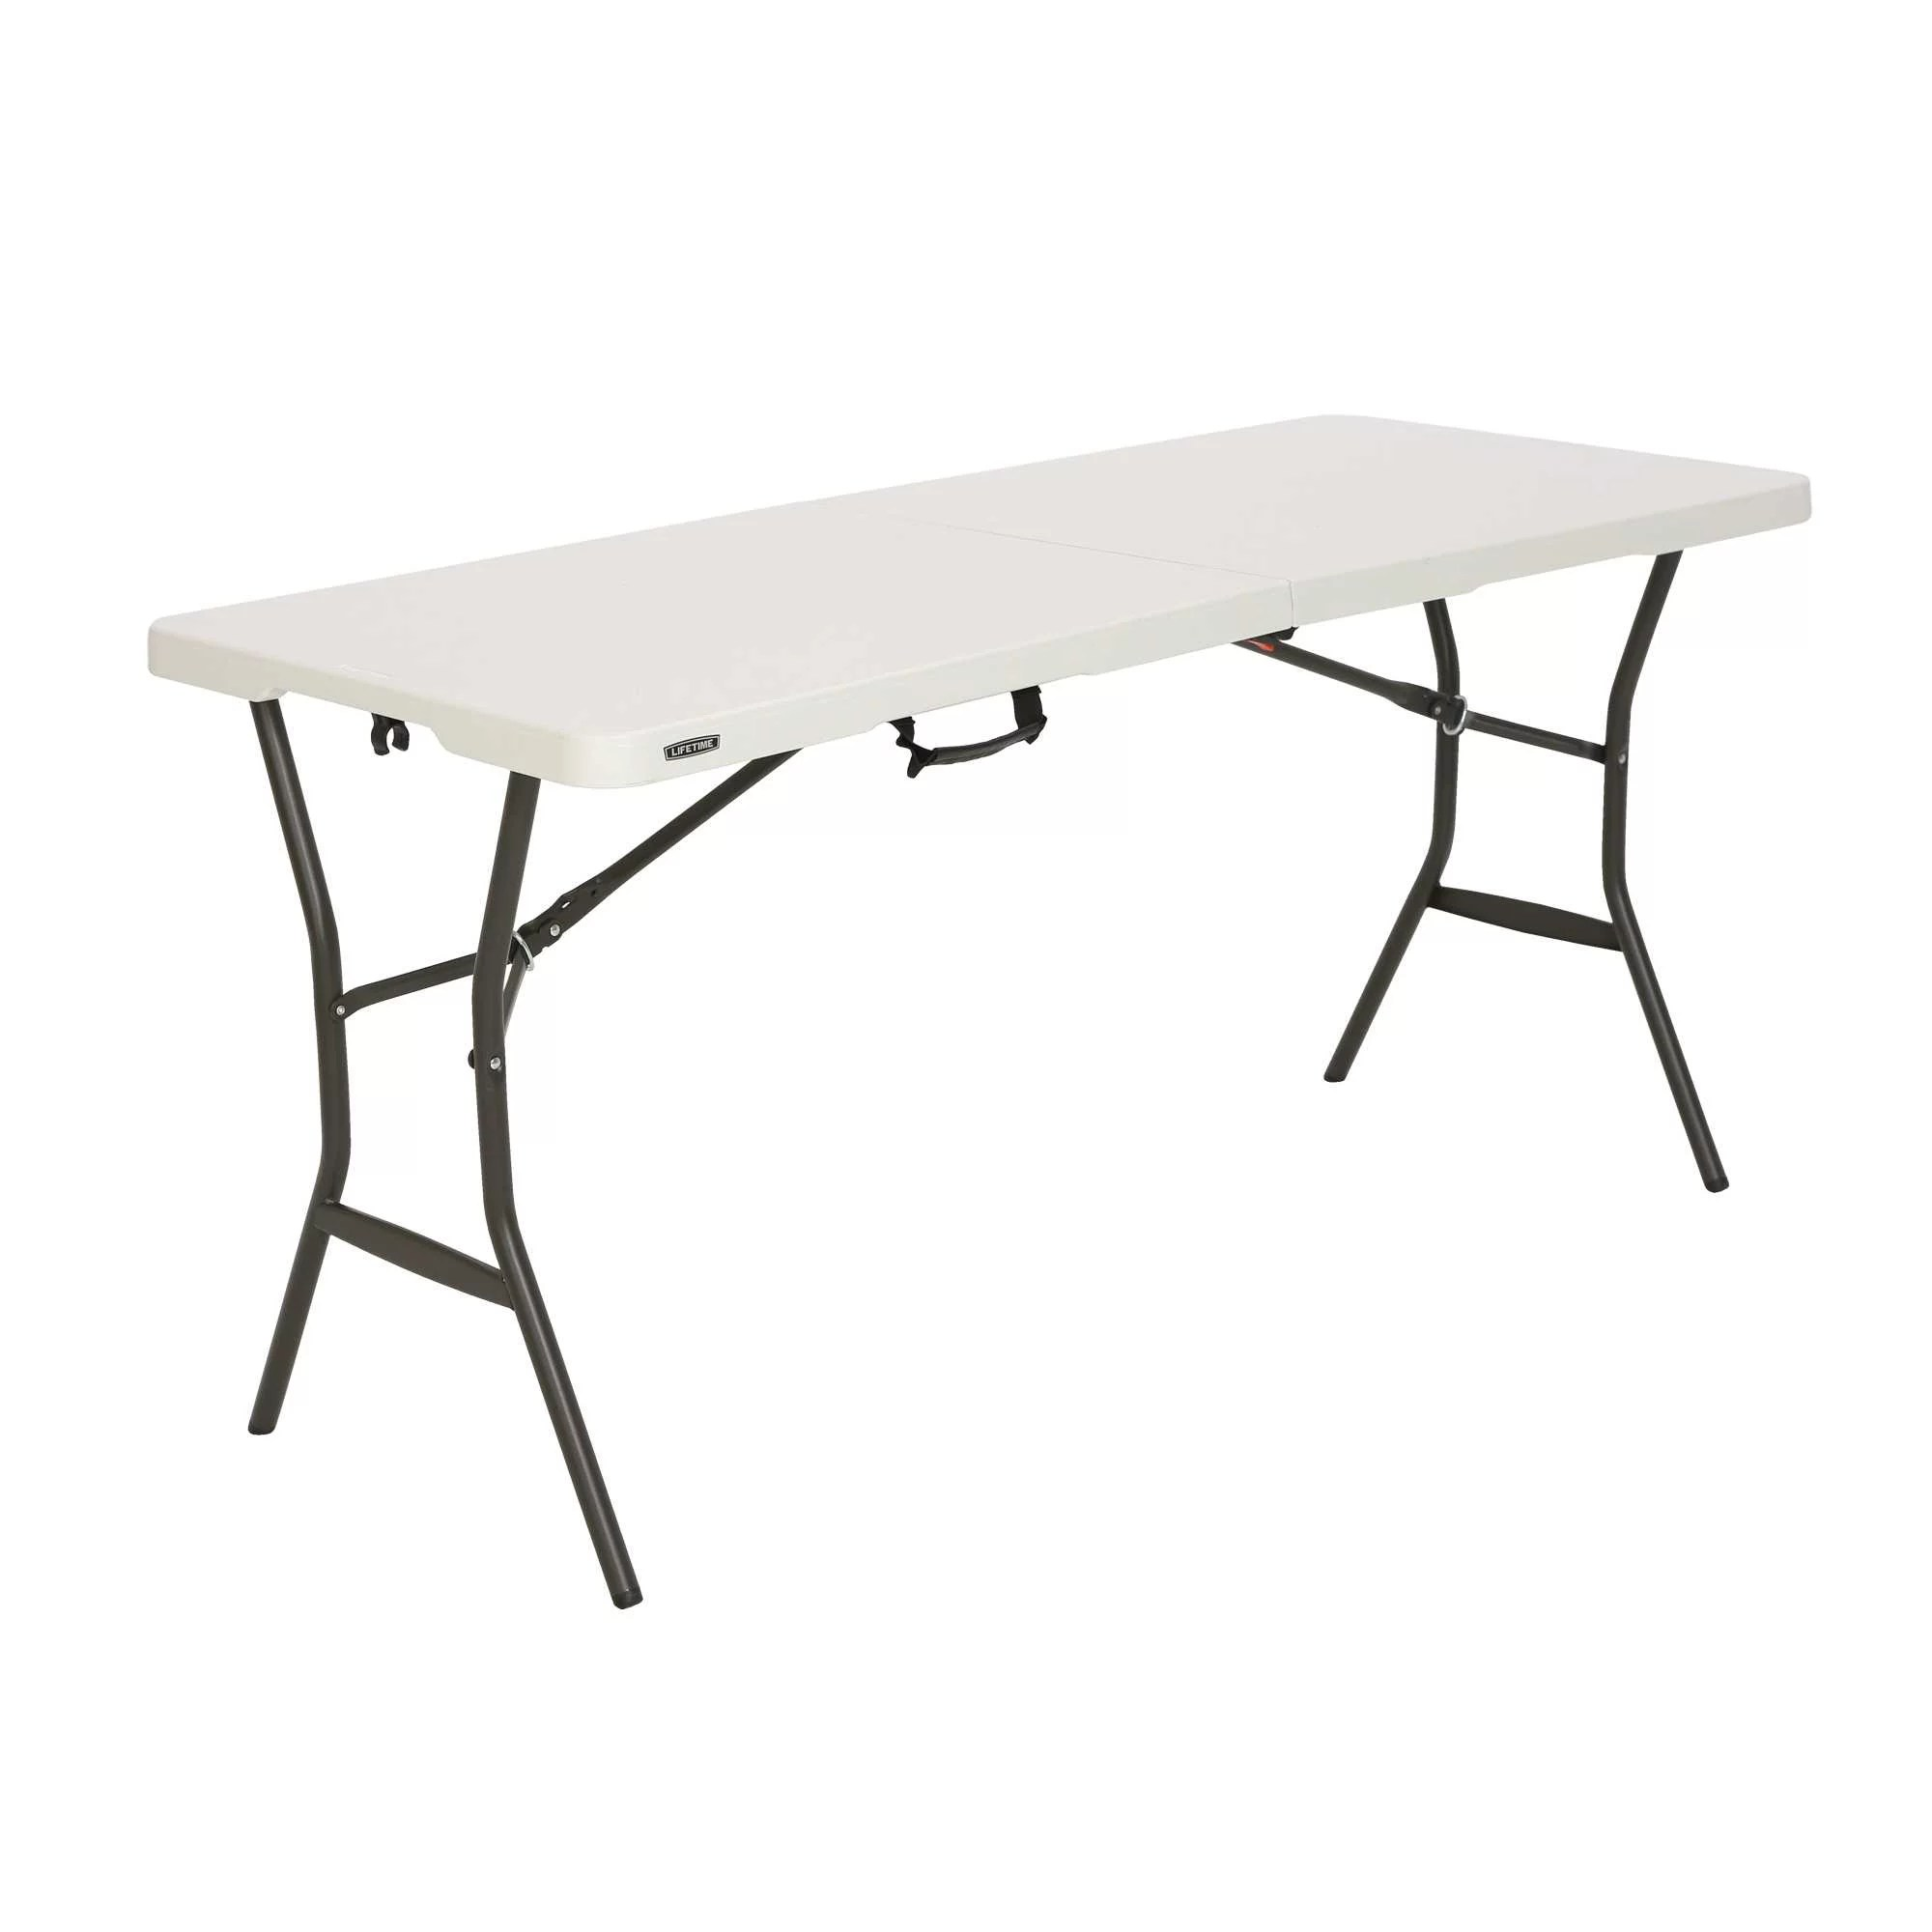 Folding Card Table Canada Lifetime 5 Essential Fold In Half Table Pearl 280513